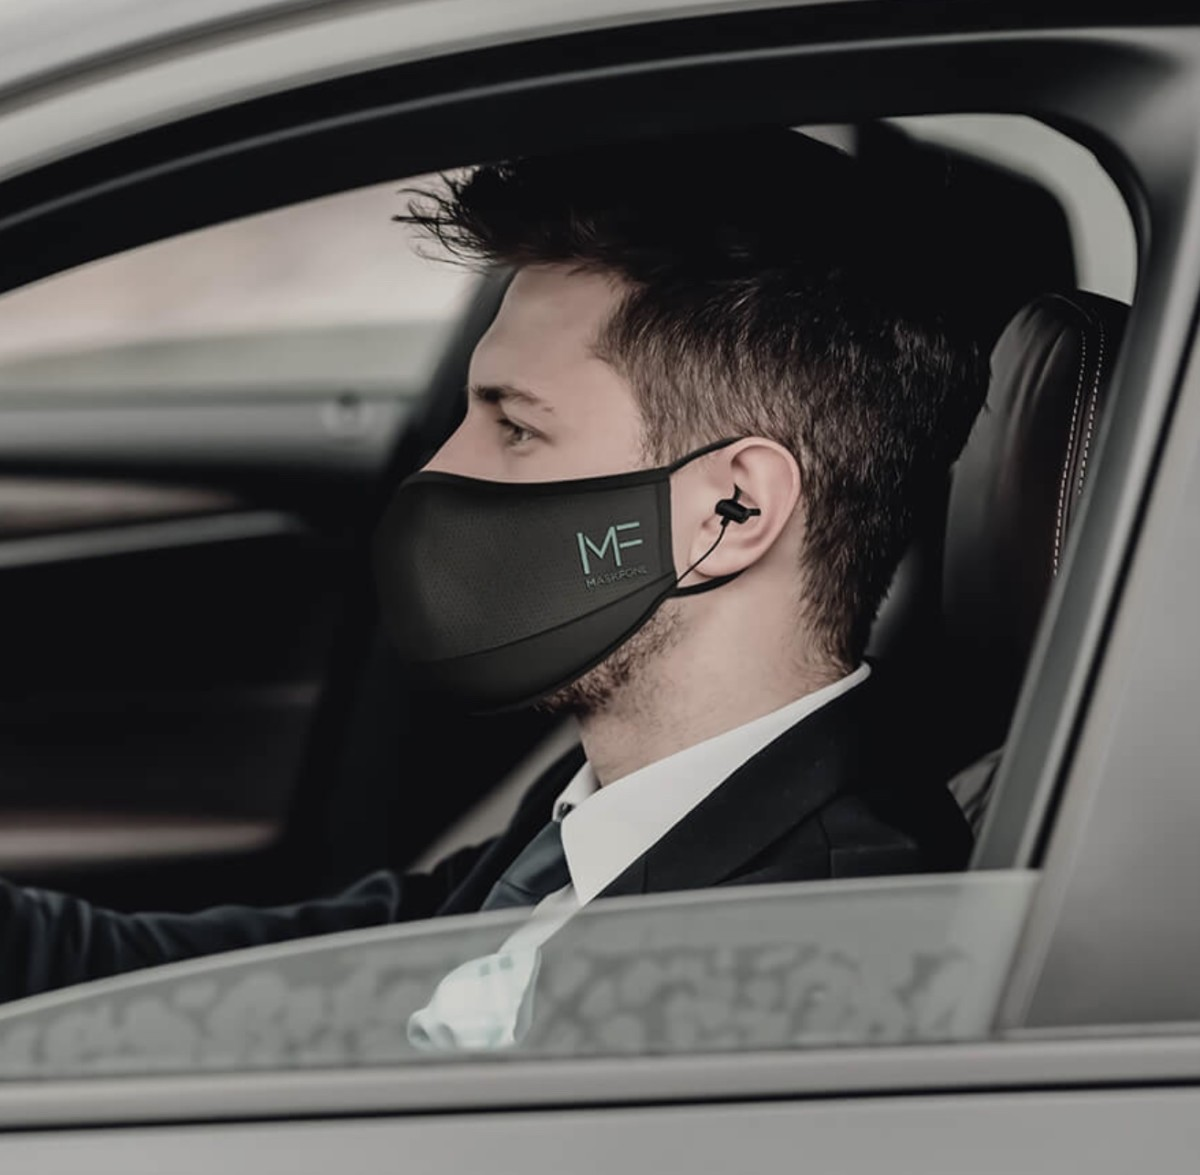 maskfone-is-the-built-in-audio-solution-smartphones-need